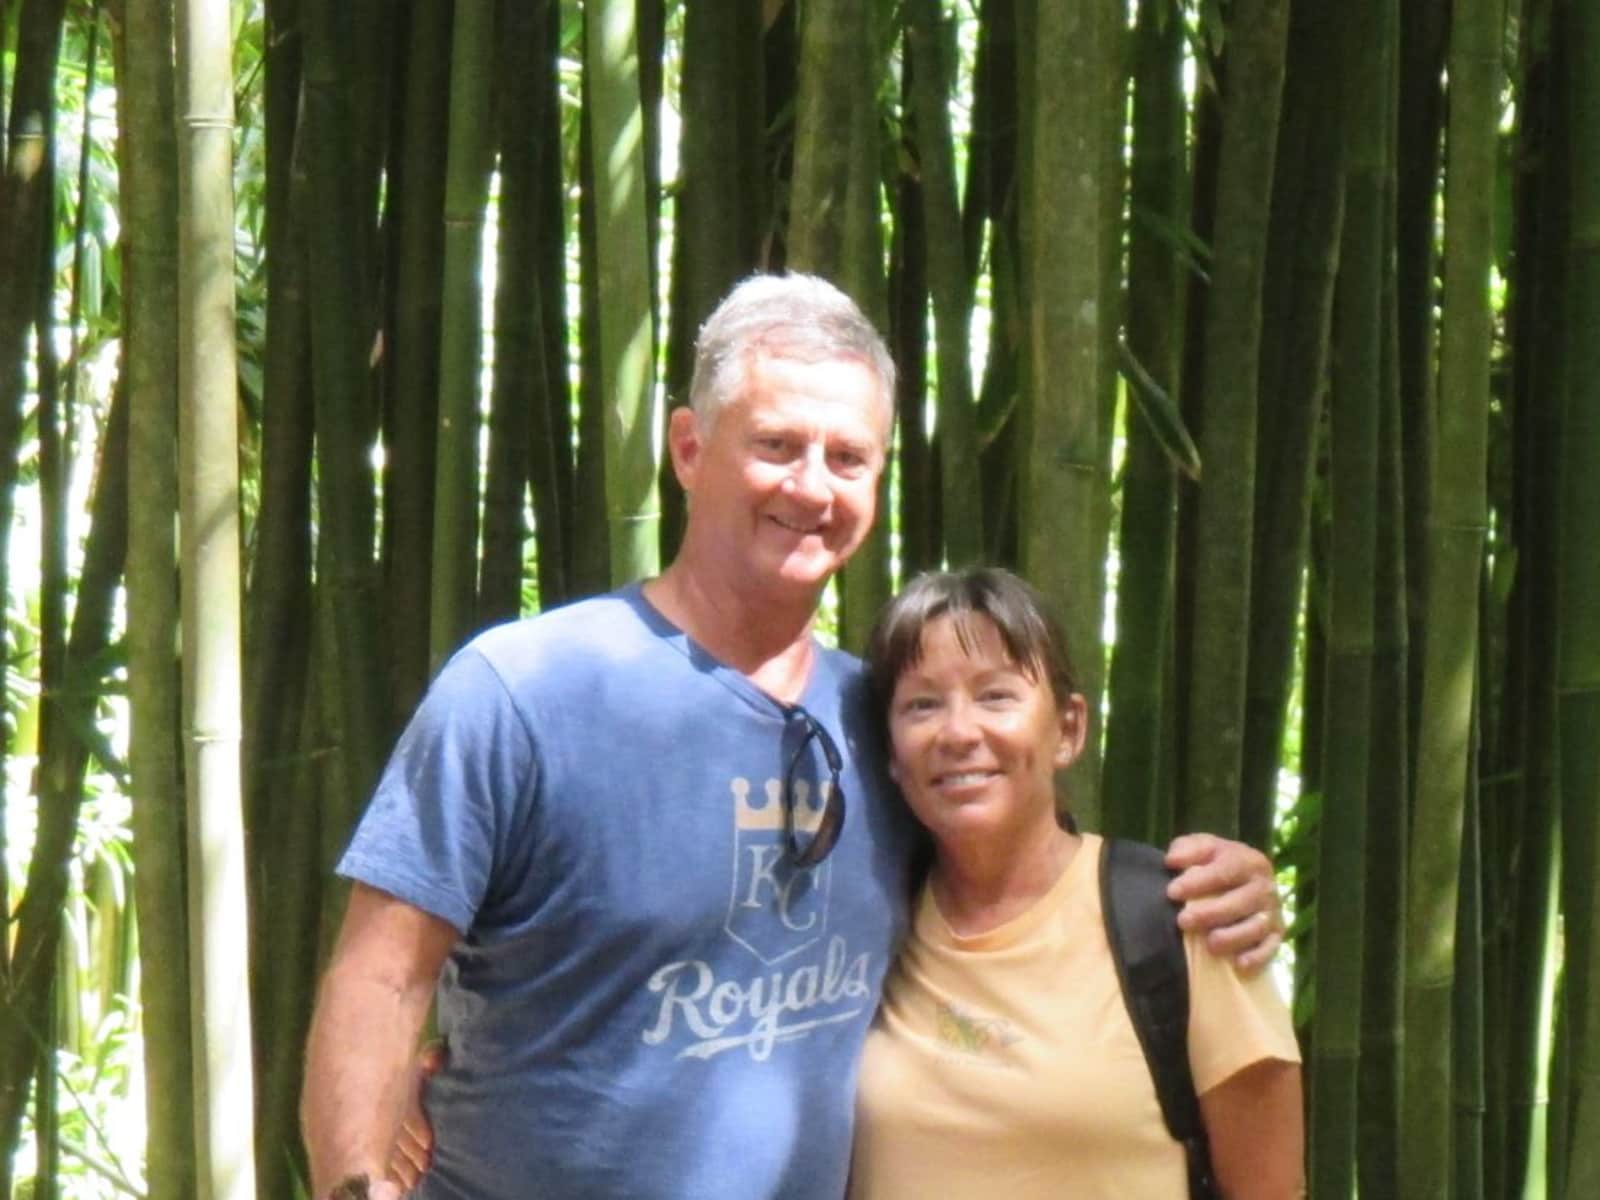 David & Pamela from Roswell, New Mexico, United States